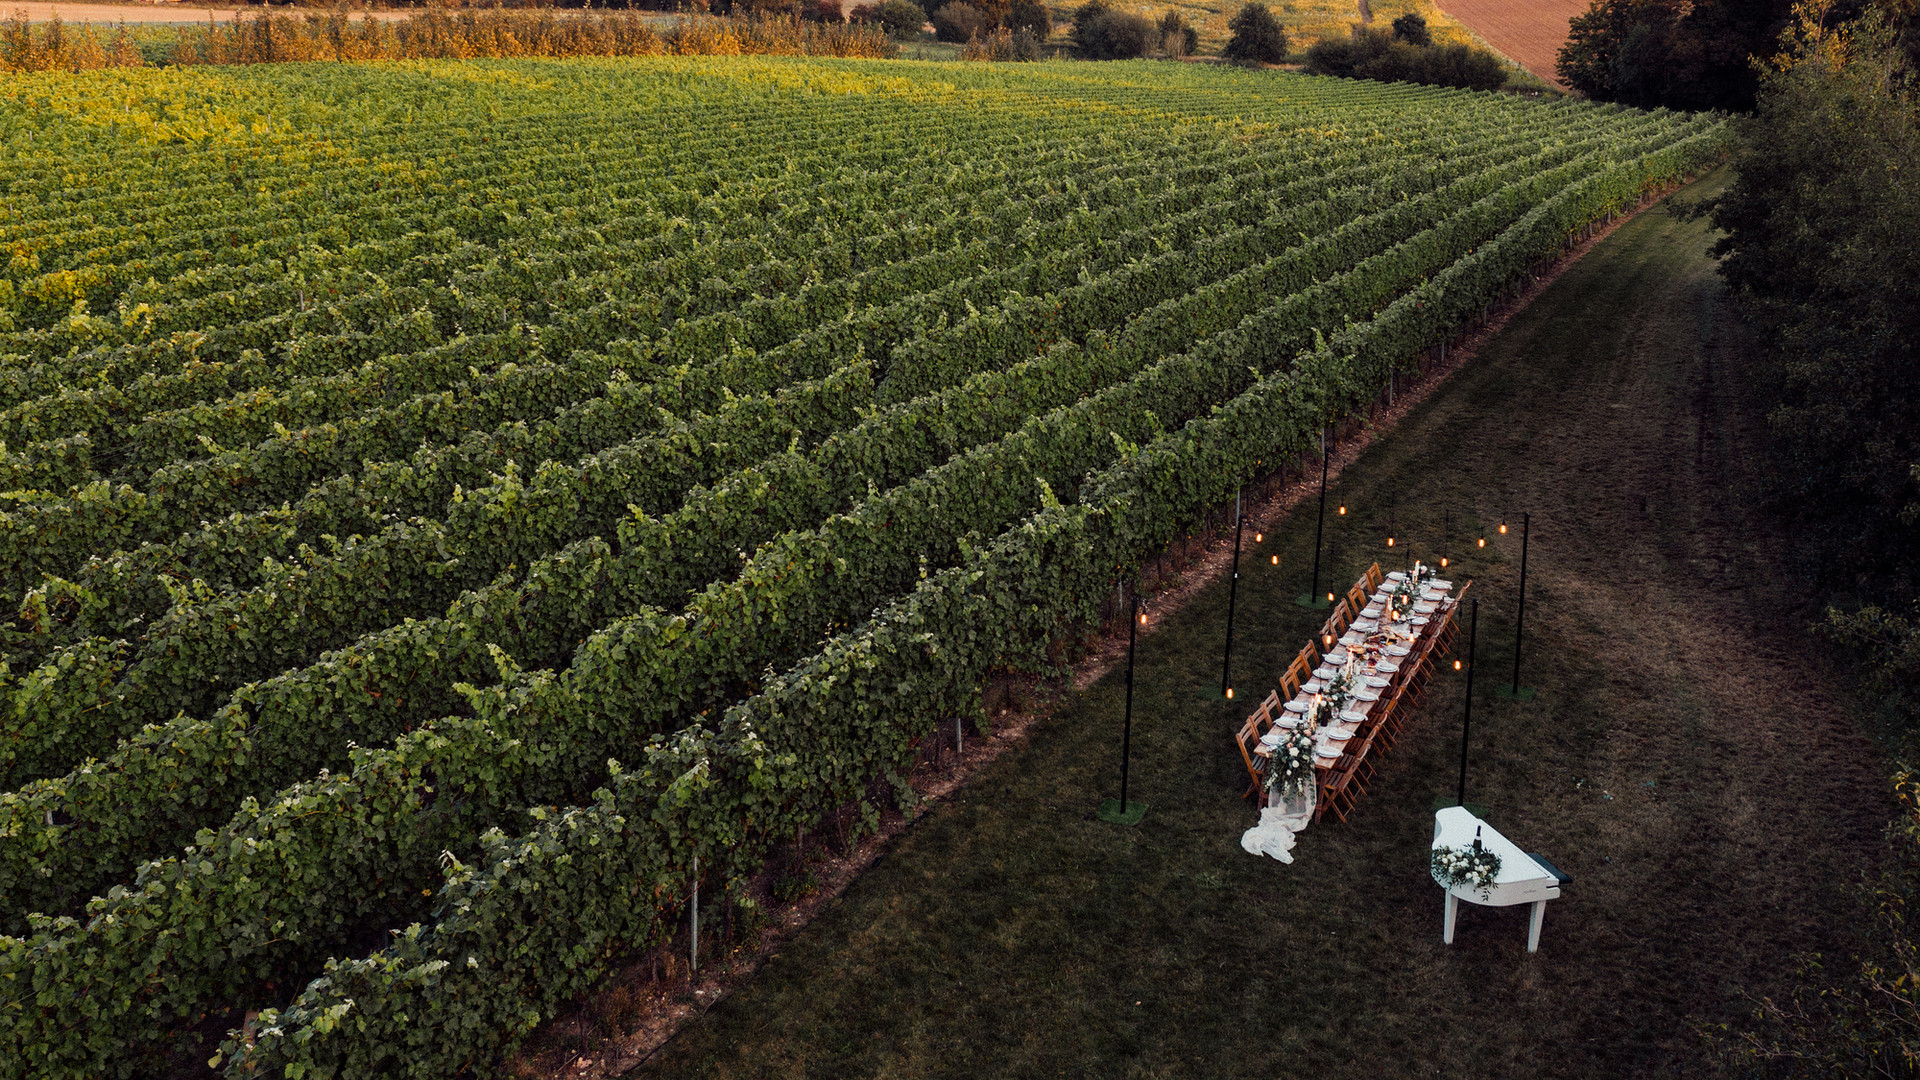 Intimate Vineyard Tablescape